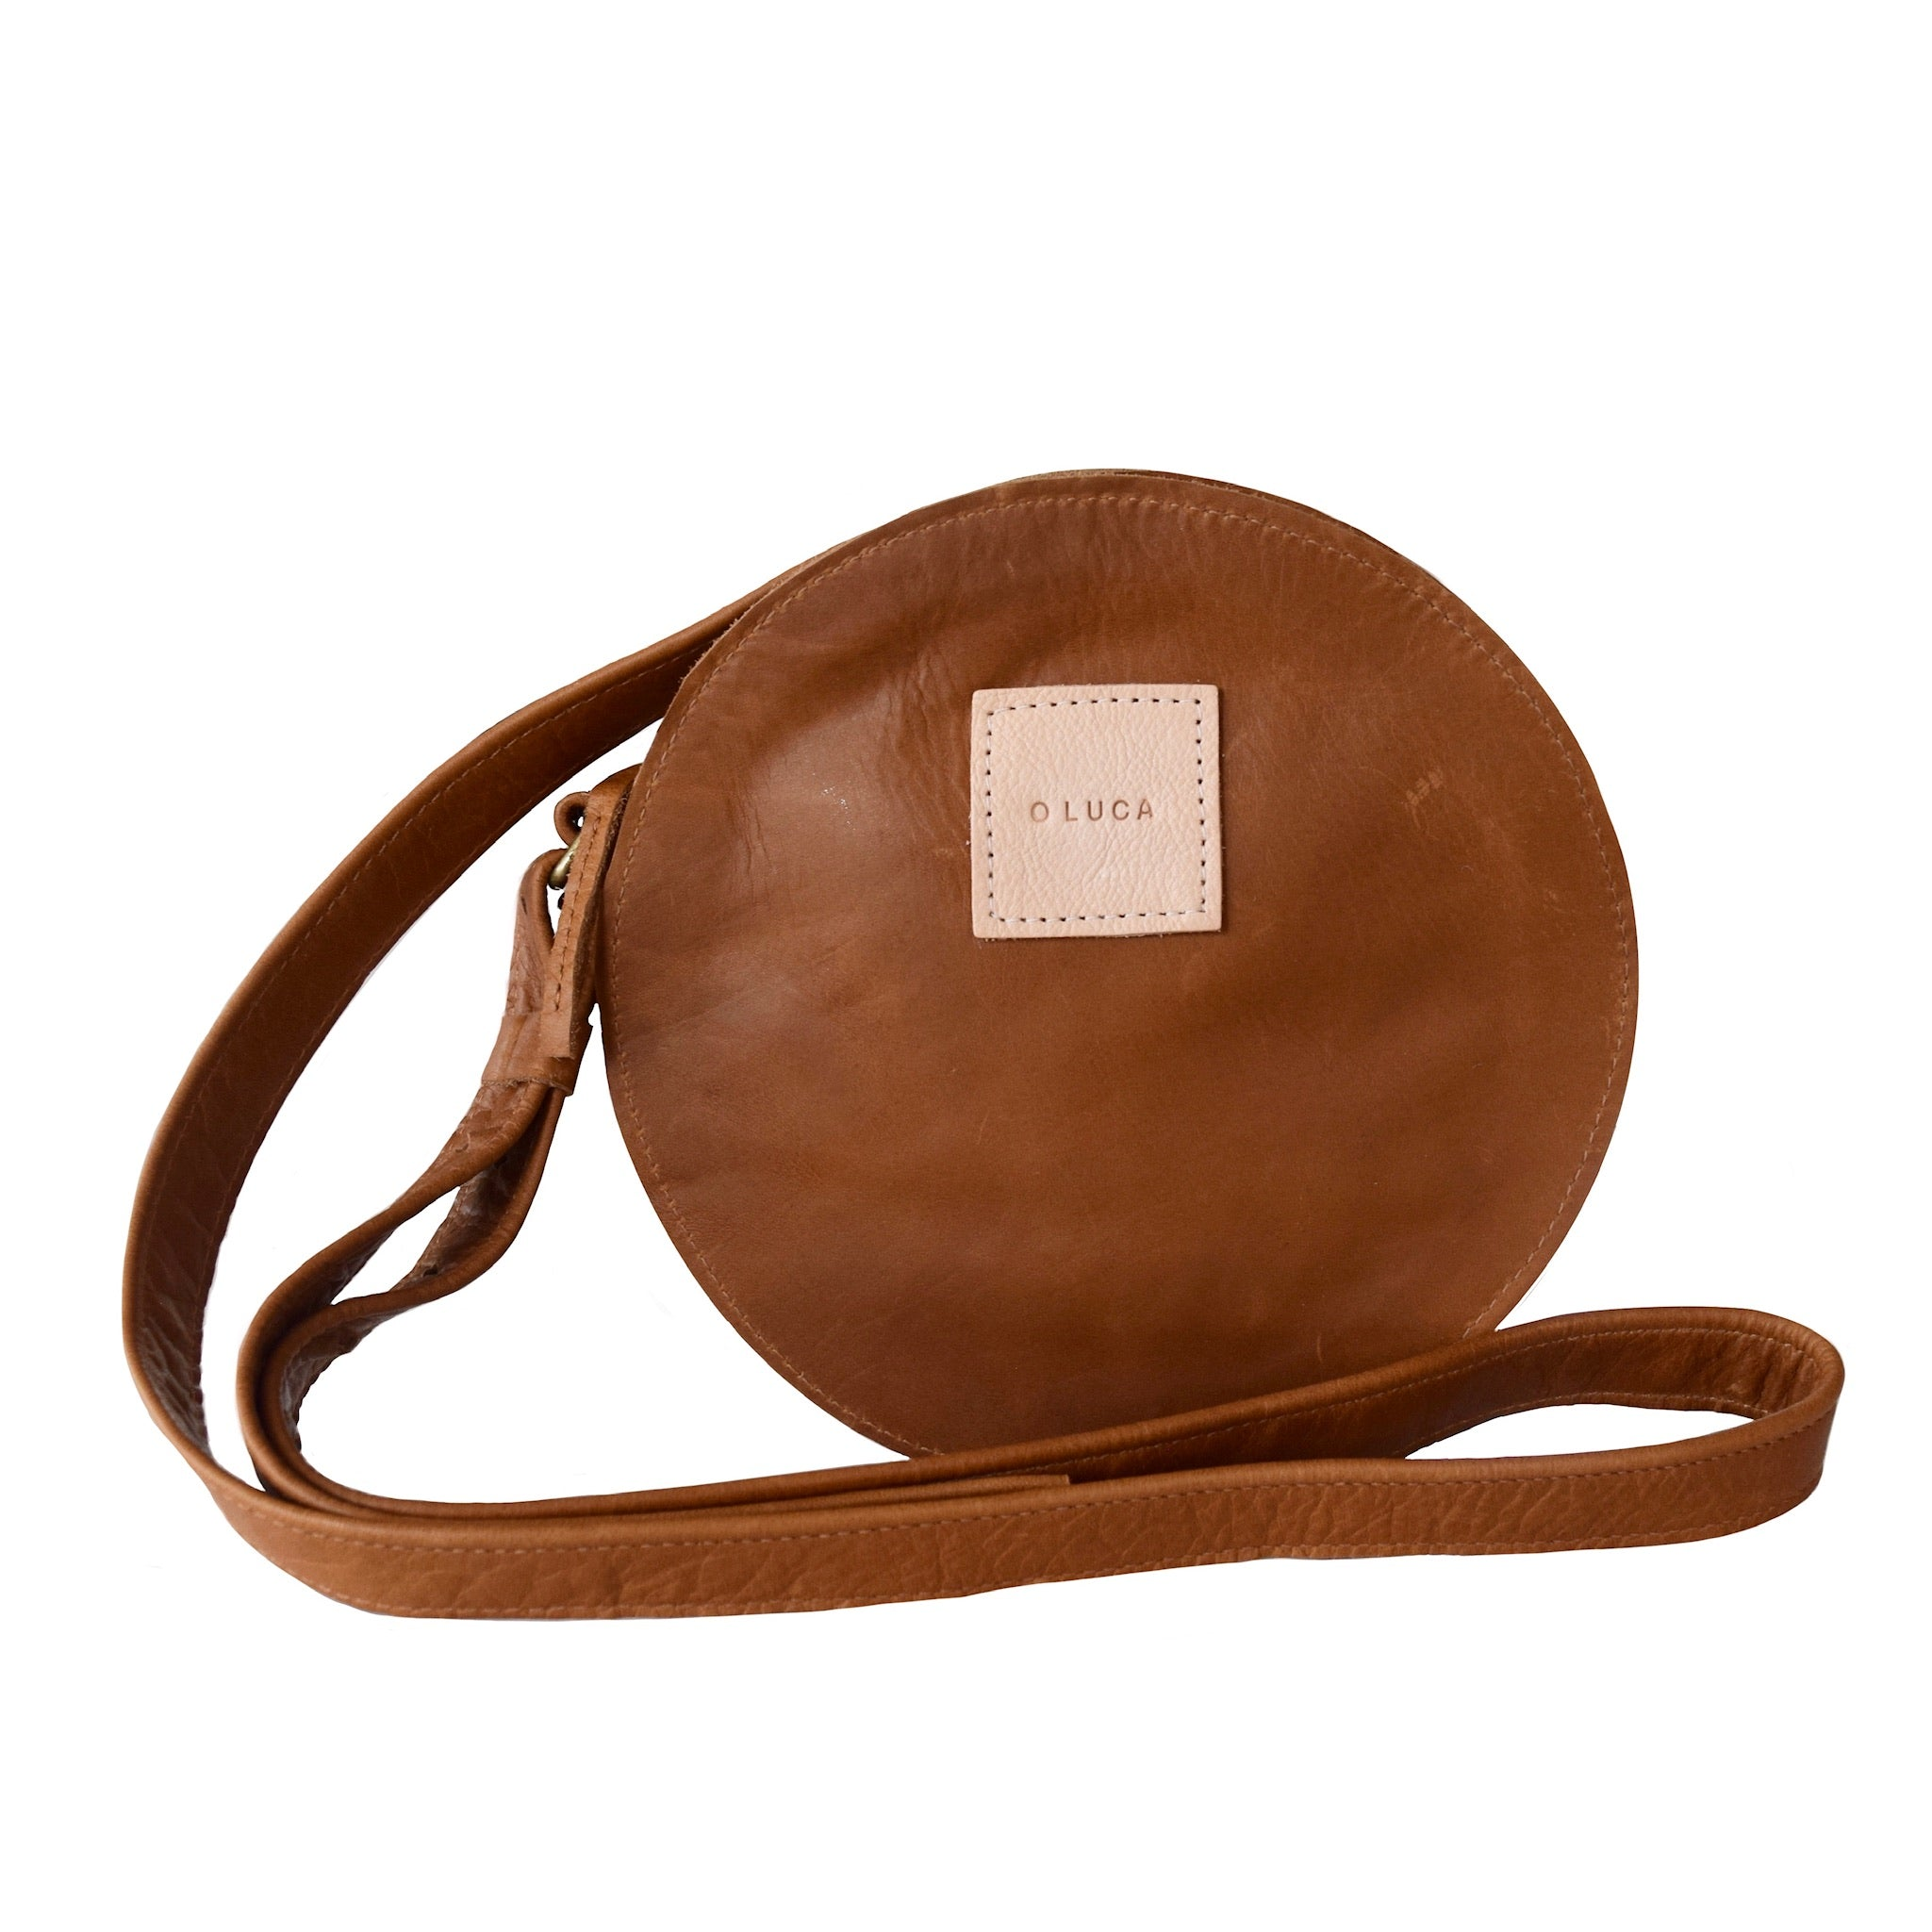 O STOCKHOLM - small leather crossbody purse handbag - caramel